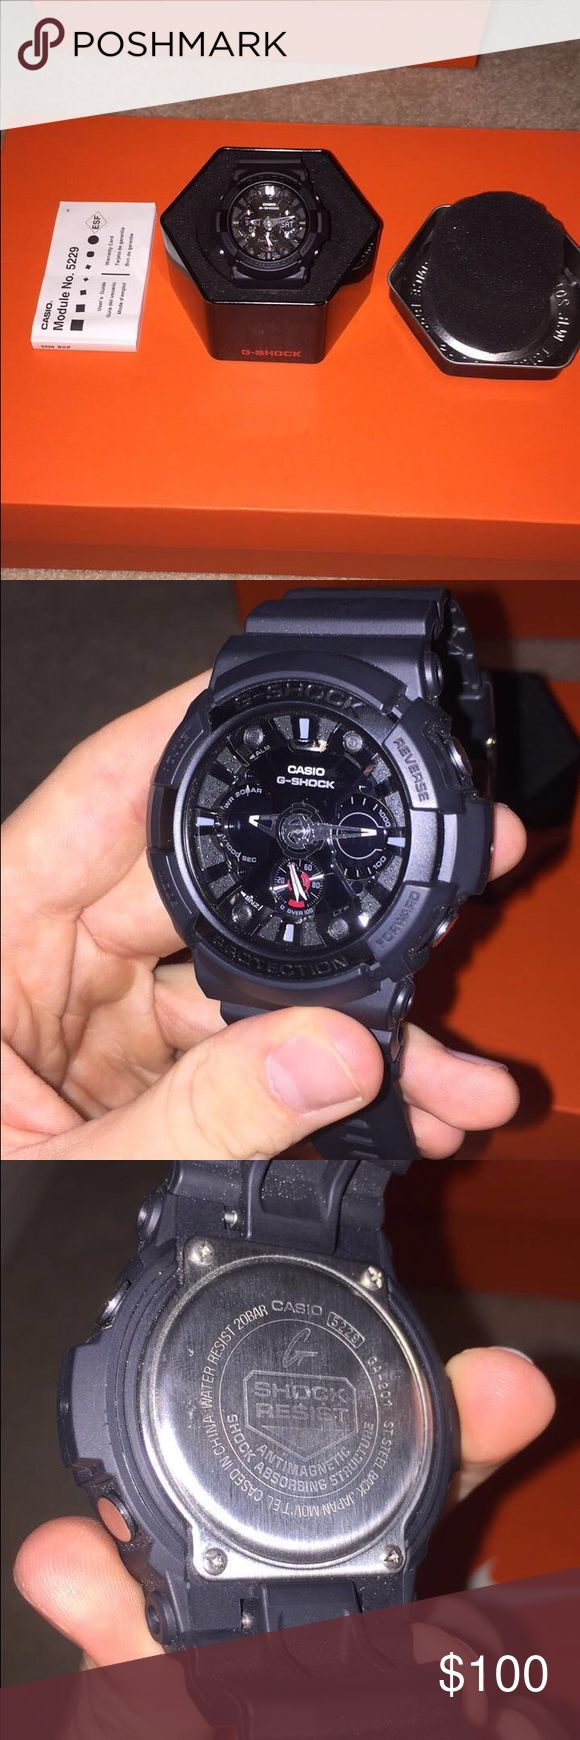 g-shock gd-100gb-1e инструкция